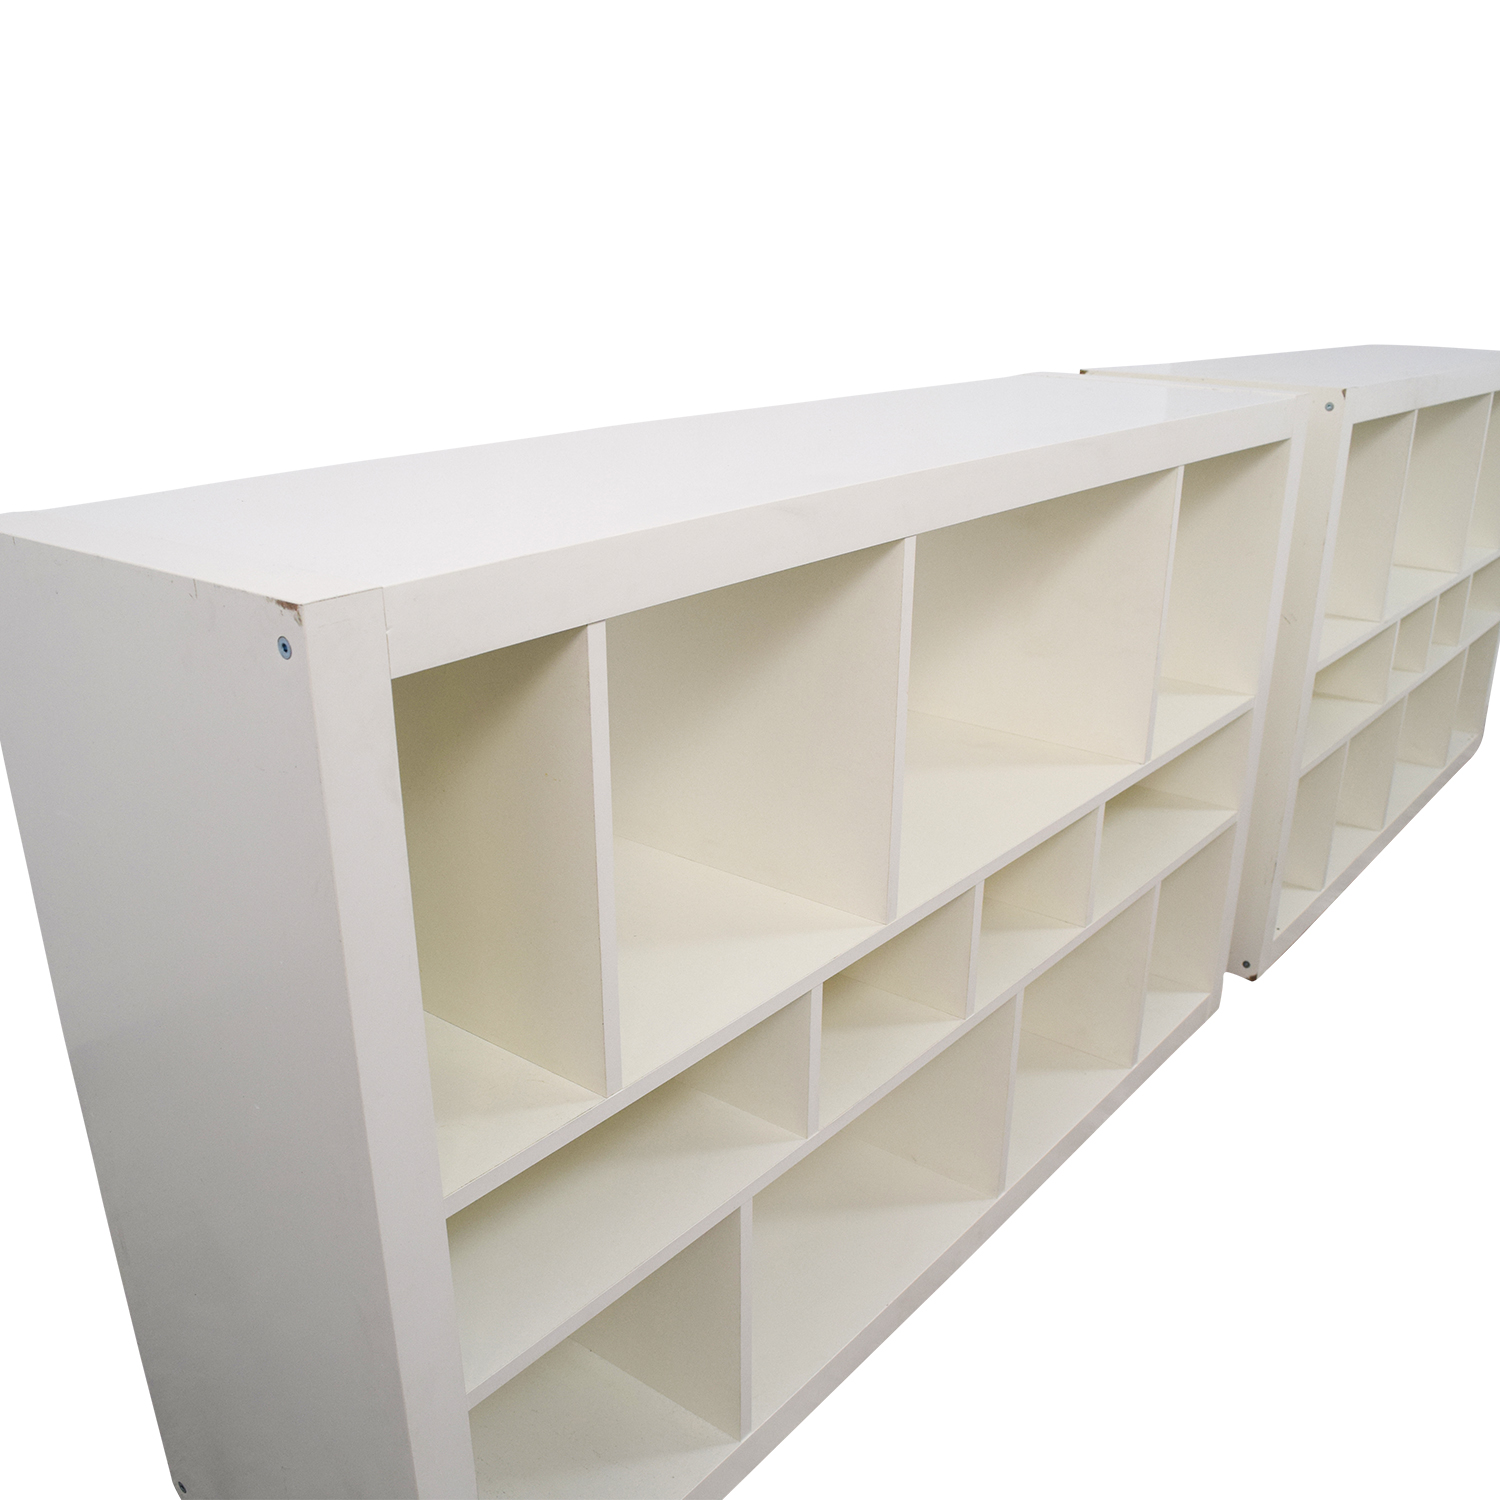 64 off ikea ikea kallax white shelf units storage. Black Bedroom Furniture Sets. Home Design Ideas